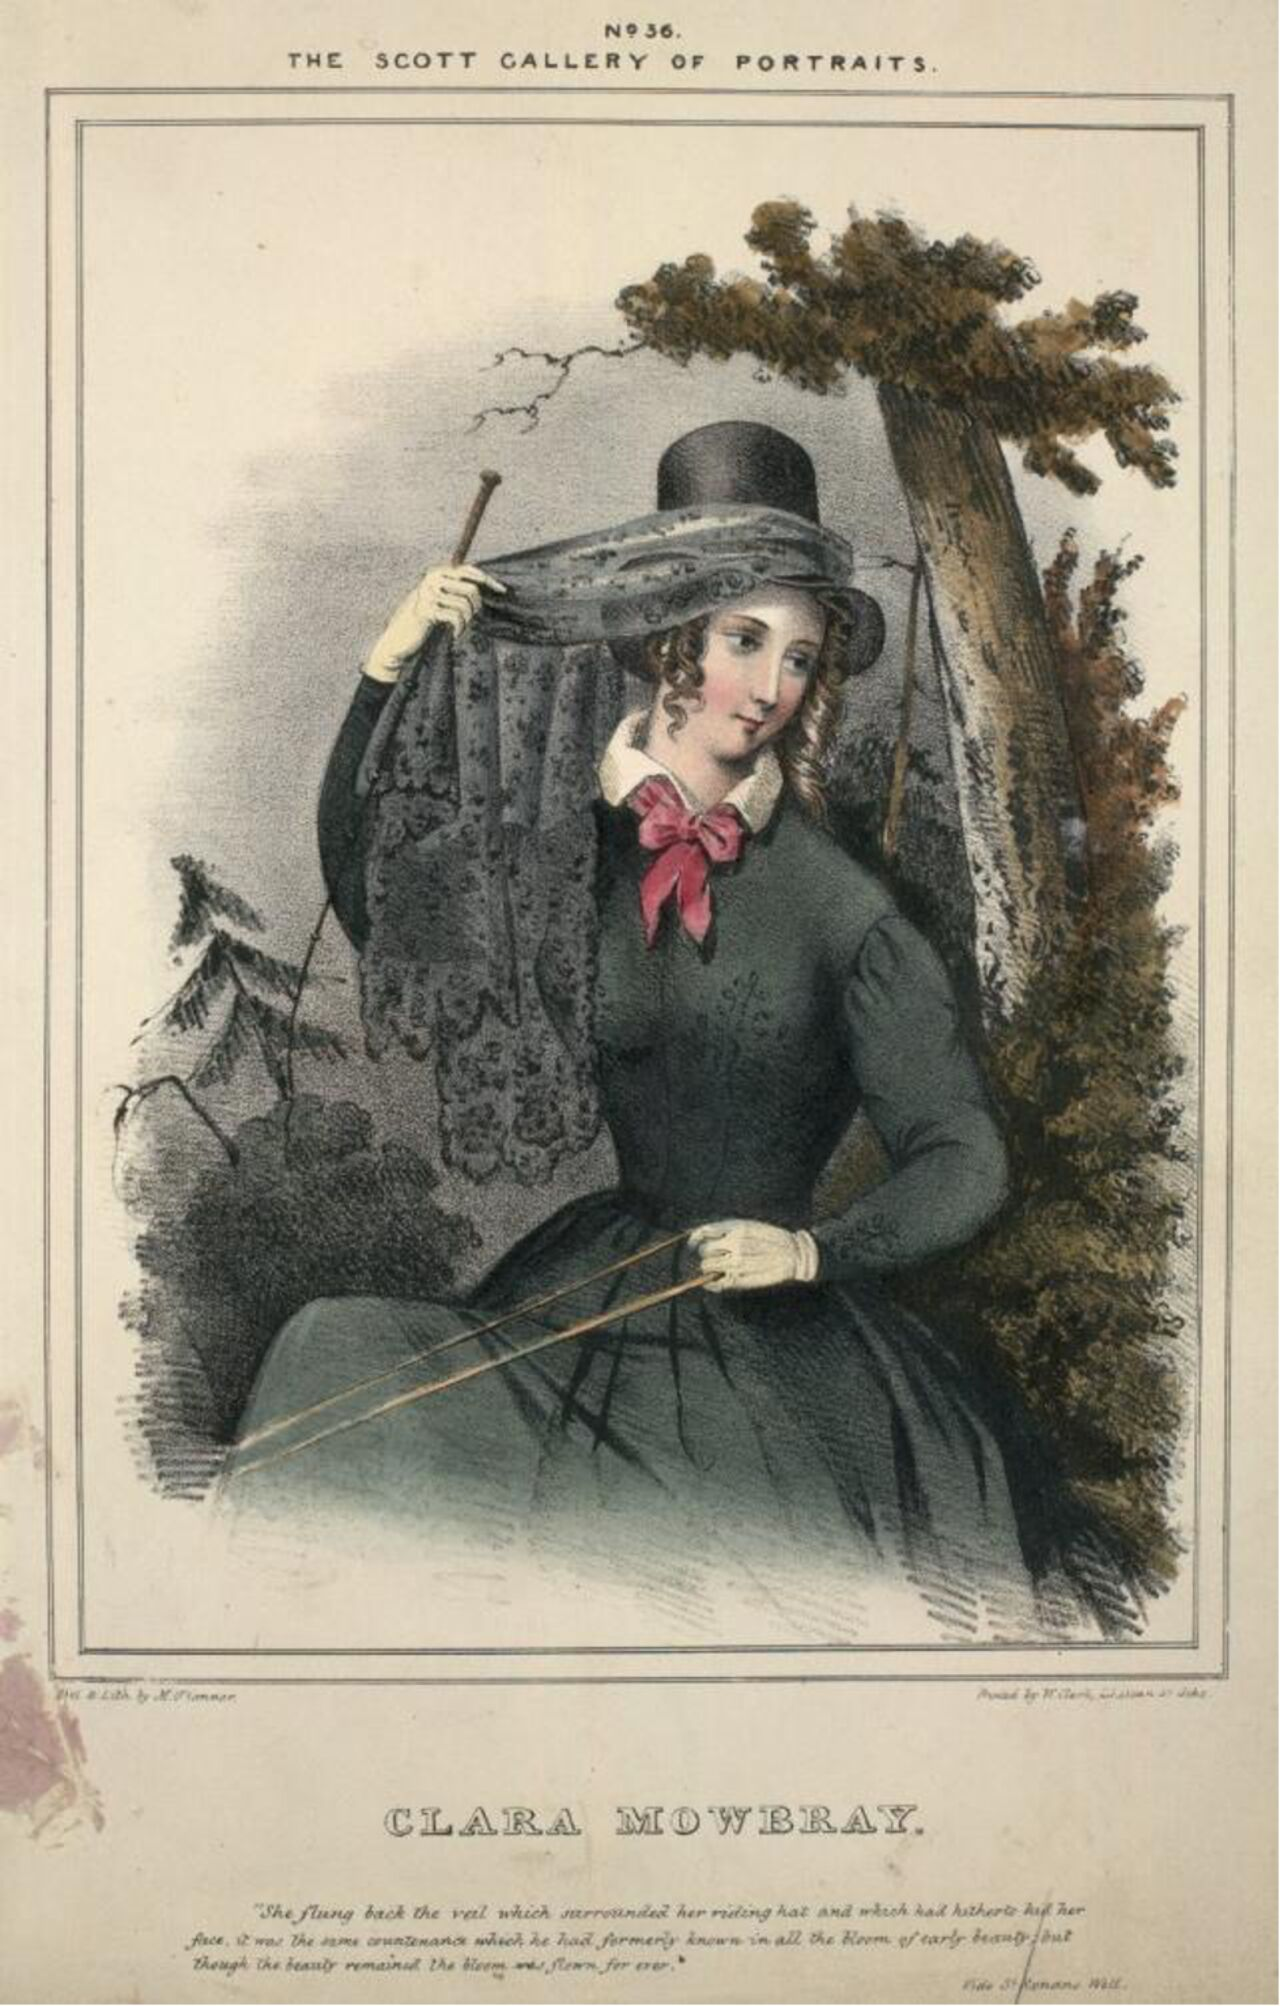 Colour lithograph showing a lady in all black sitting by a tree.